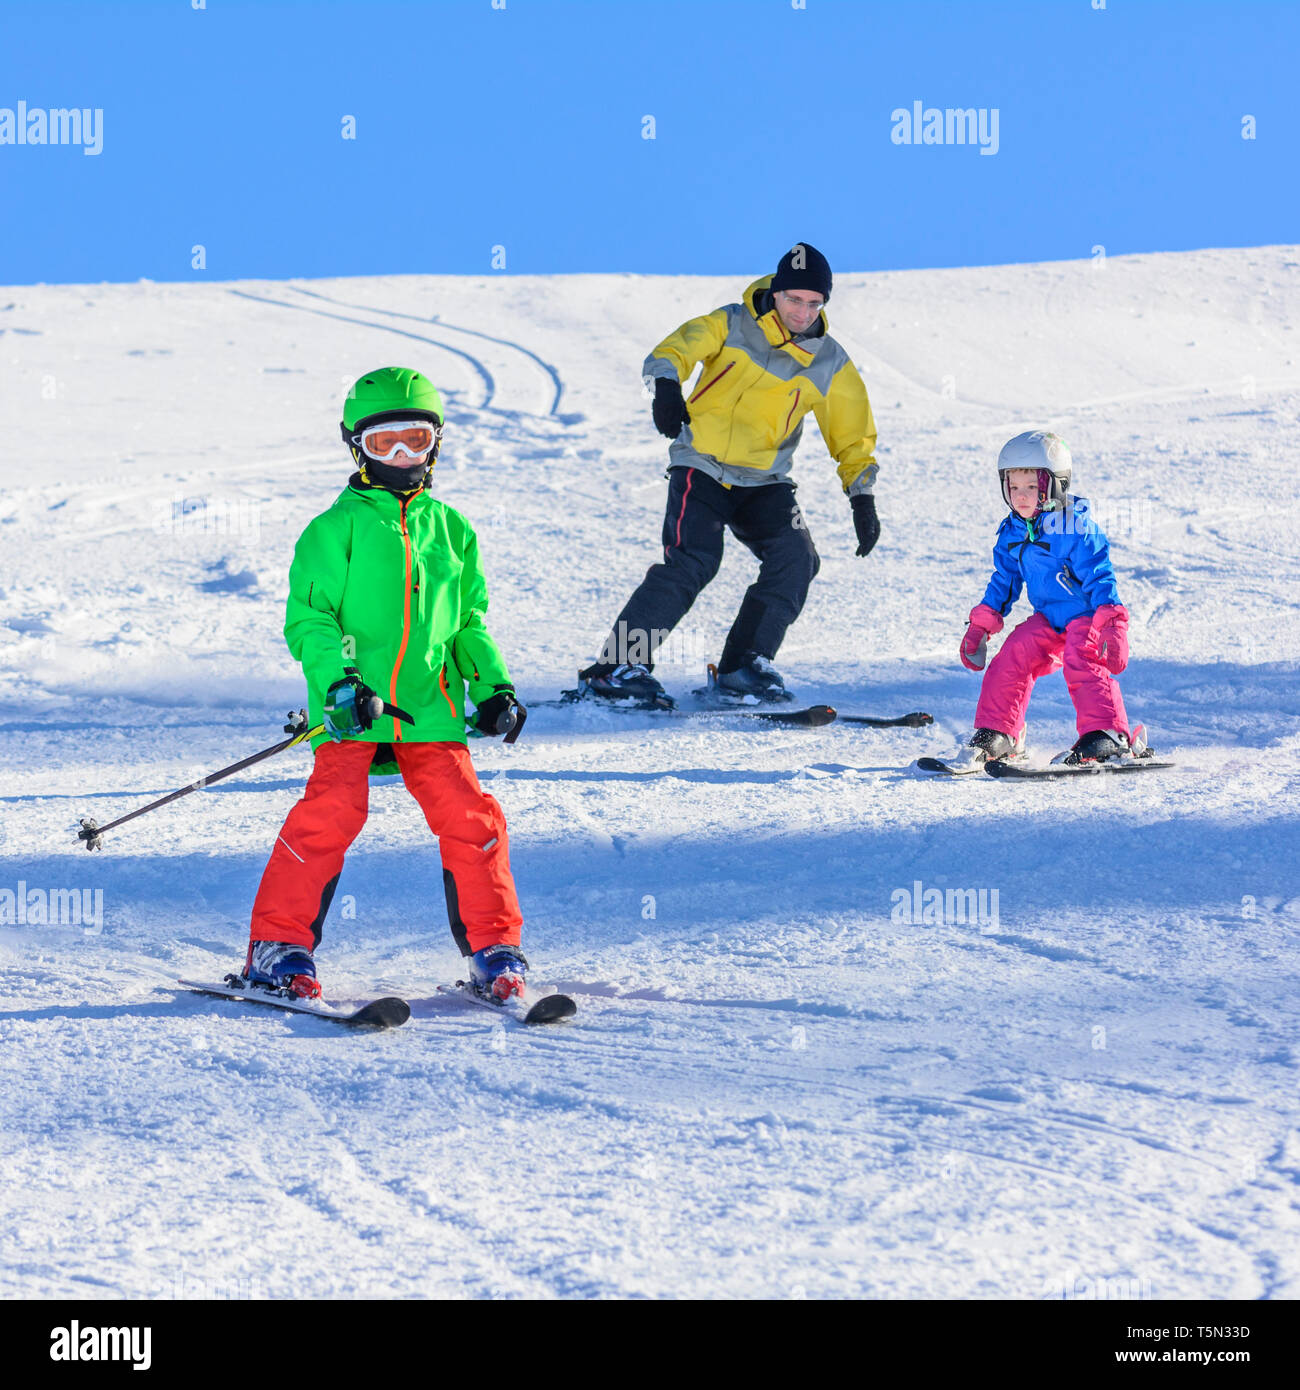 Skiing with the kids on sunny winter day - Stock Image